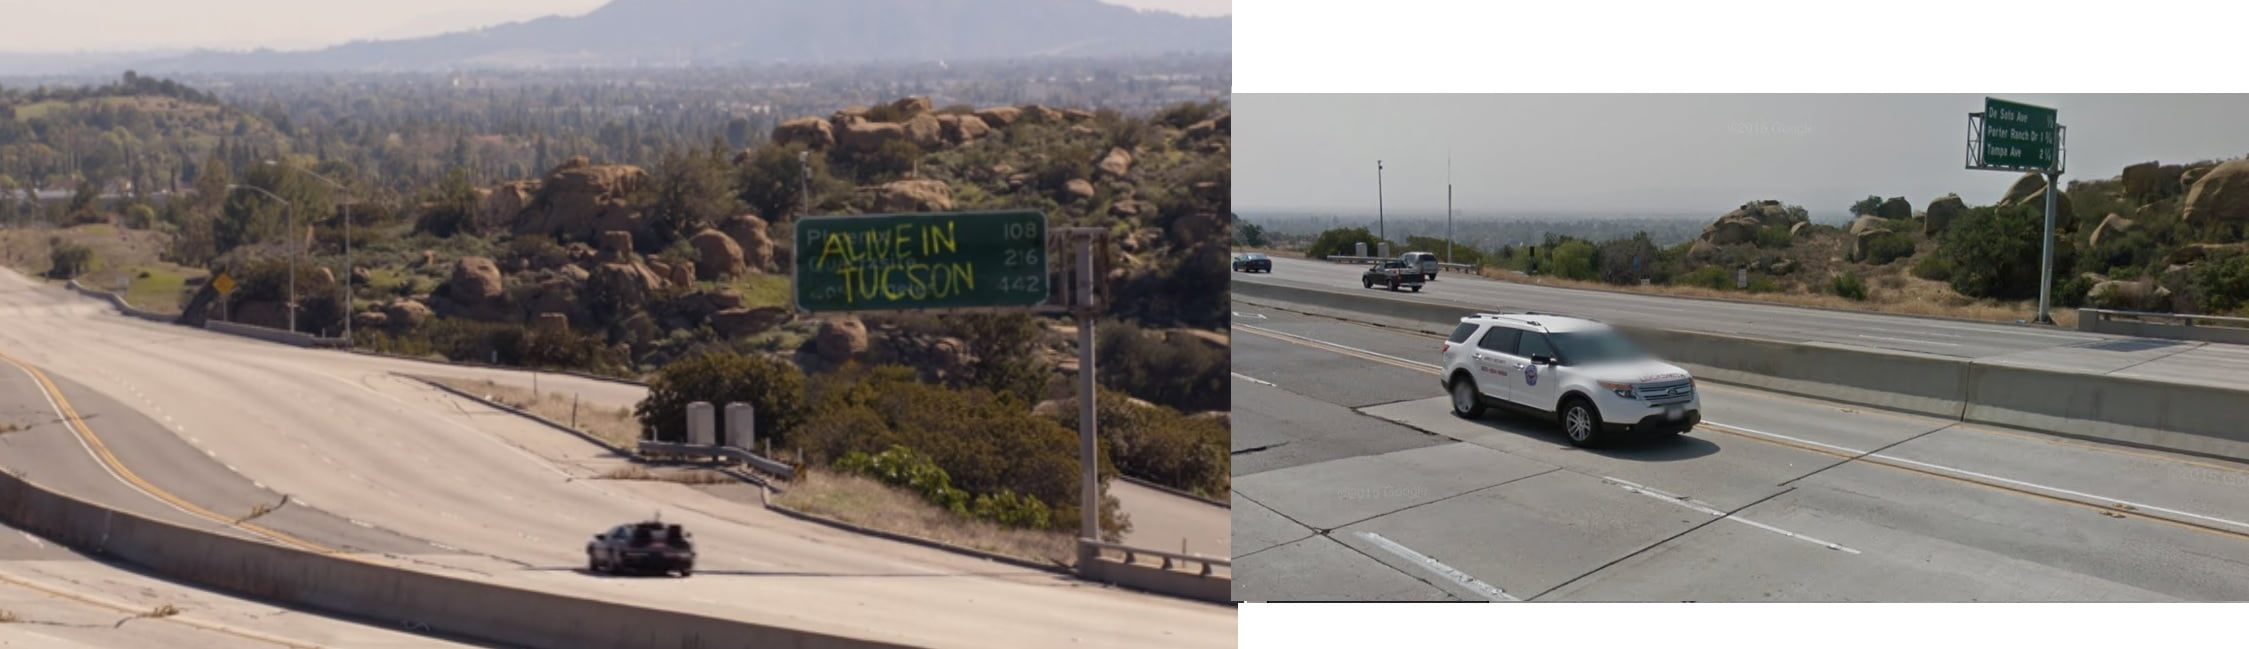 the-last-man-on-earth-filming-locations-30-years-of-science-down the-tubes-118fwy-topanga